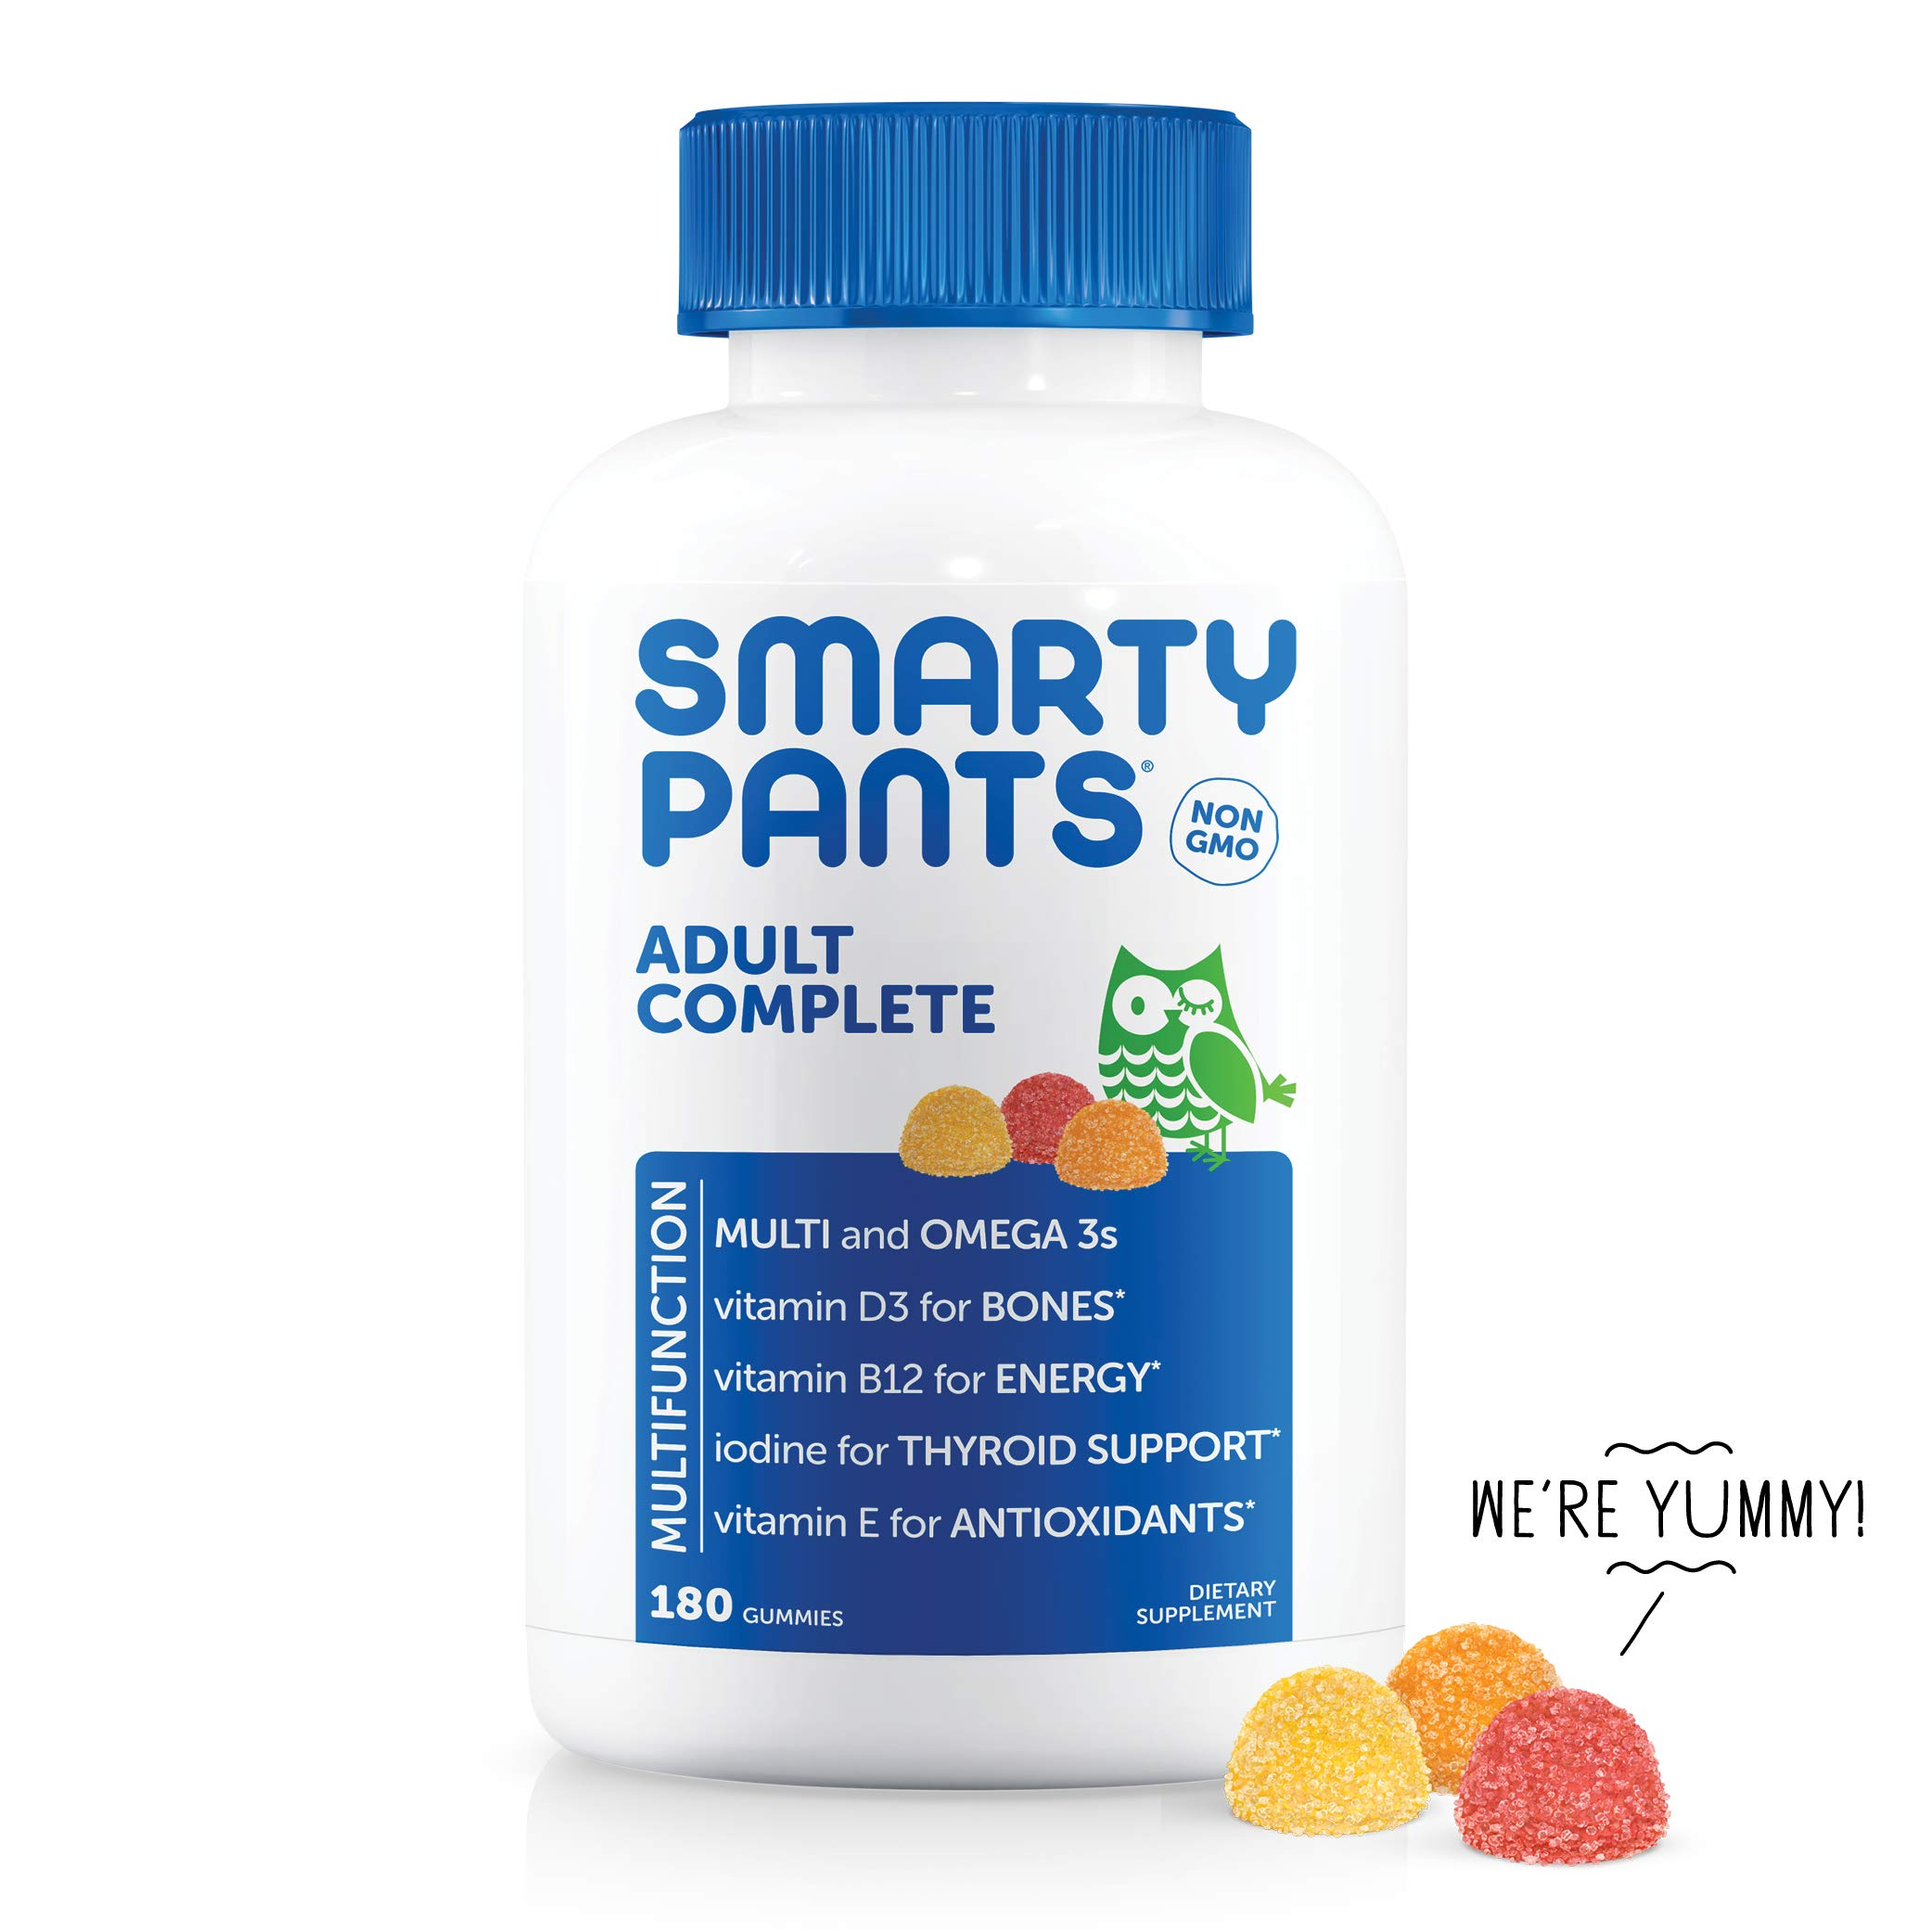 SmartyPants Adult Complete Daily Gummy Vitamins: Gluten Free, Multivitamin & Omega 3 DHA/EPA Fish Oil, Methyl B12, Vitamin D3, Non-GMO, 180 count (30 Day Supply)